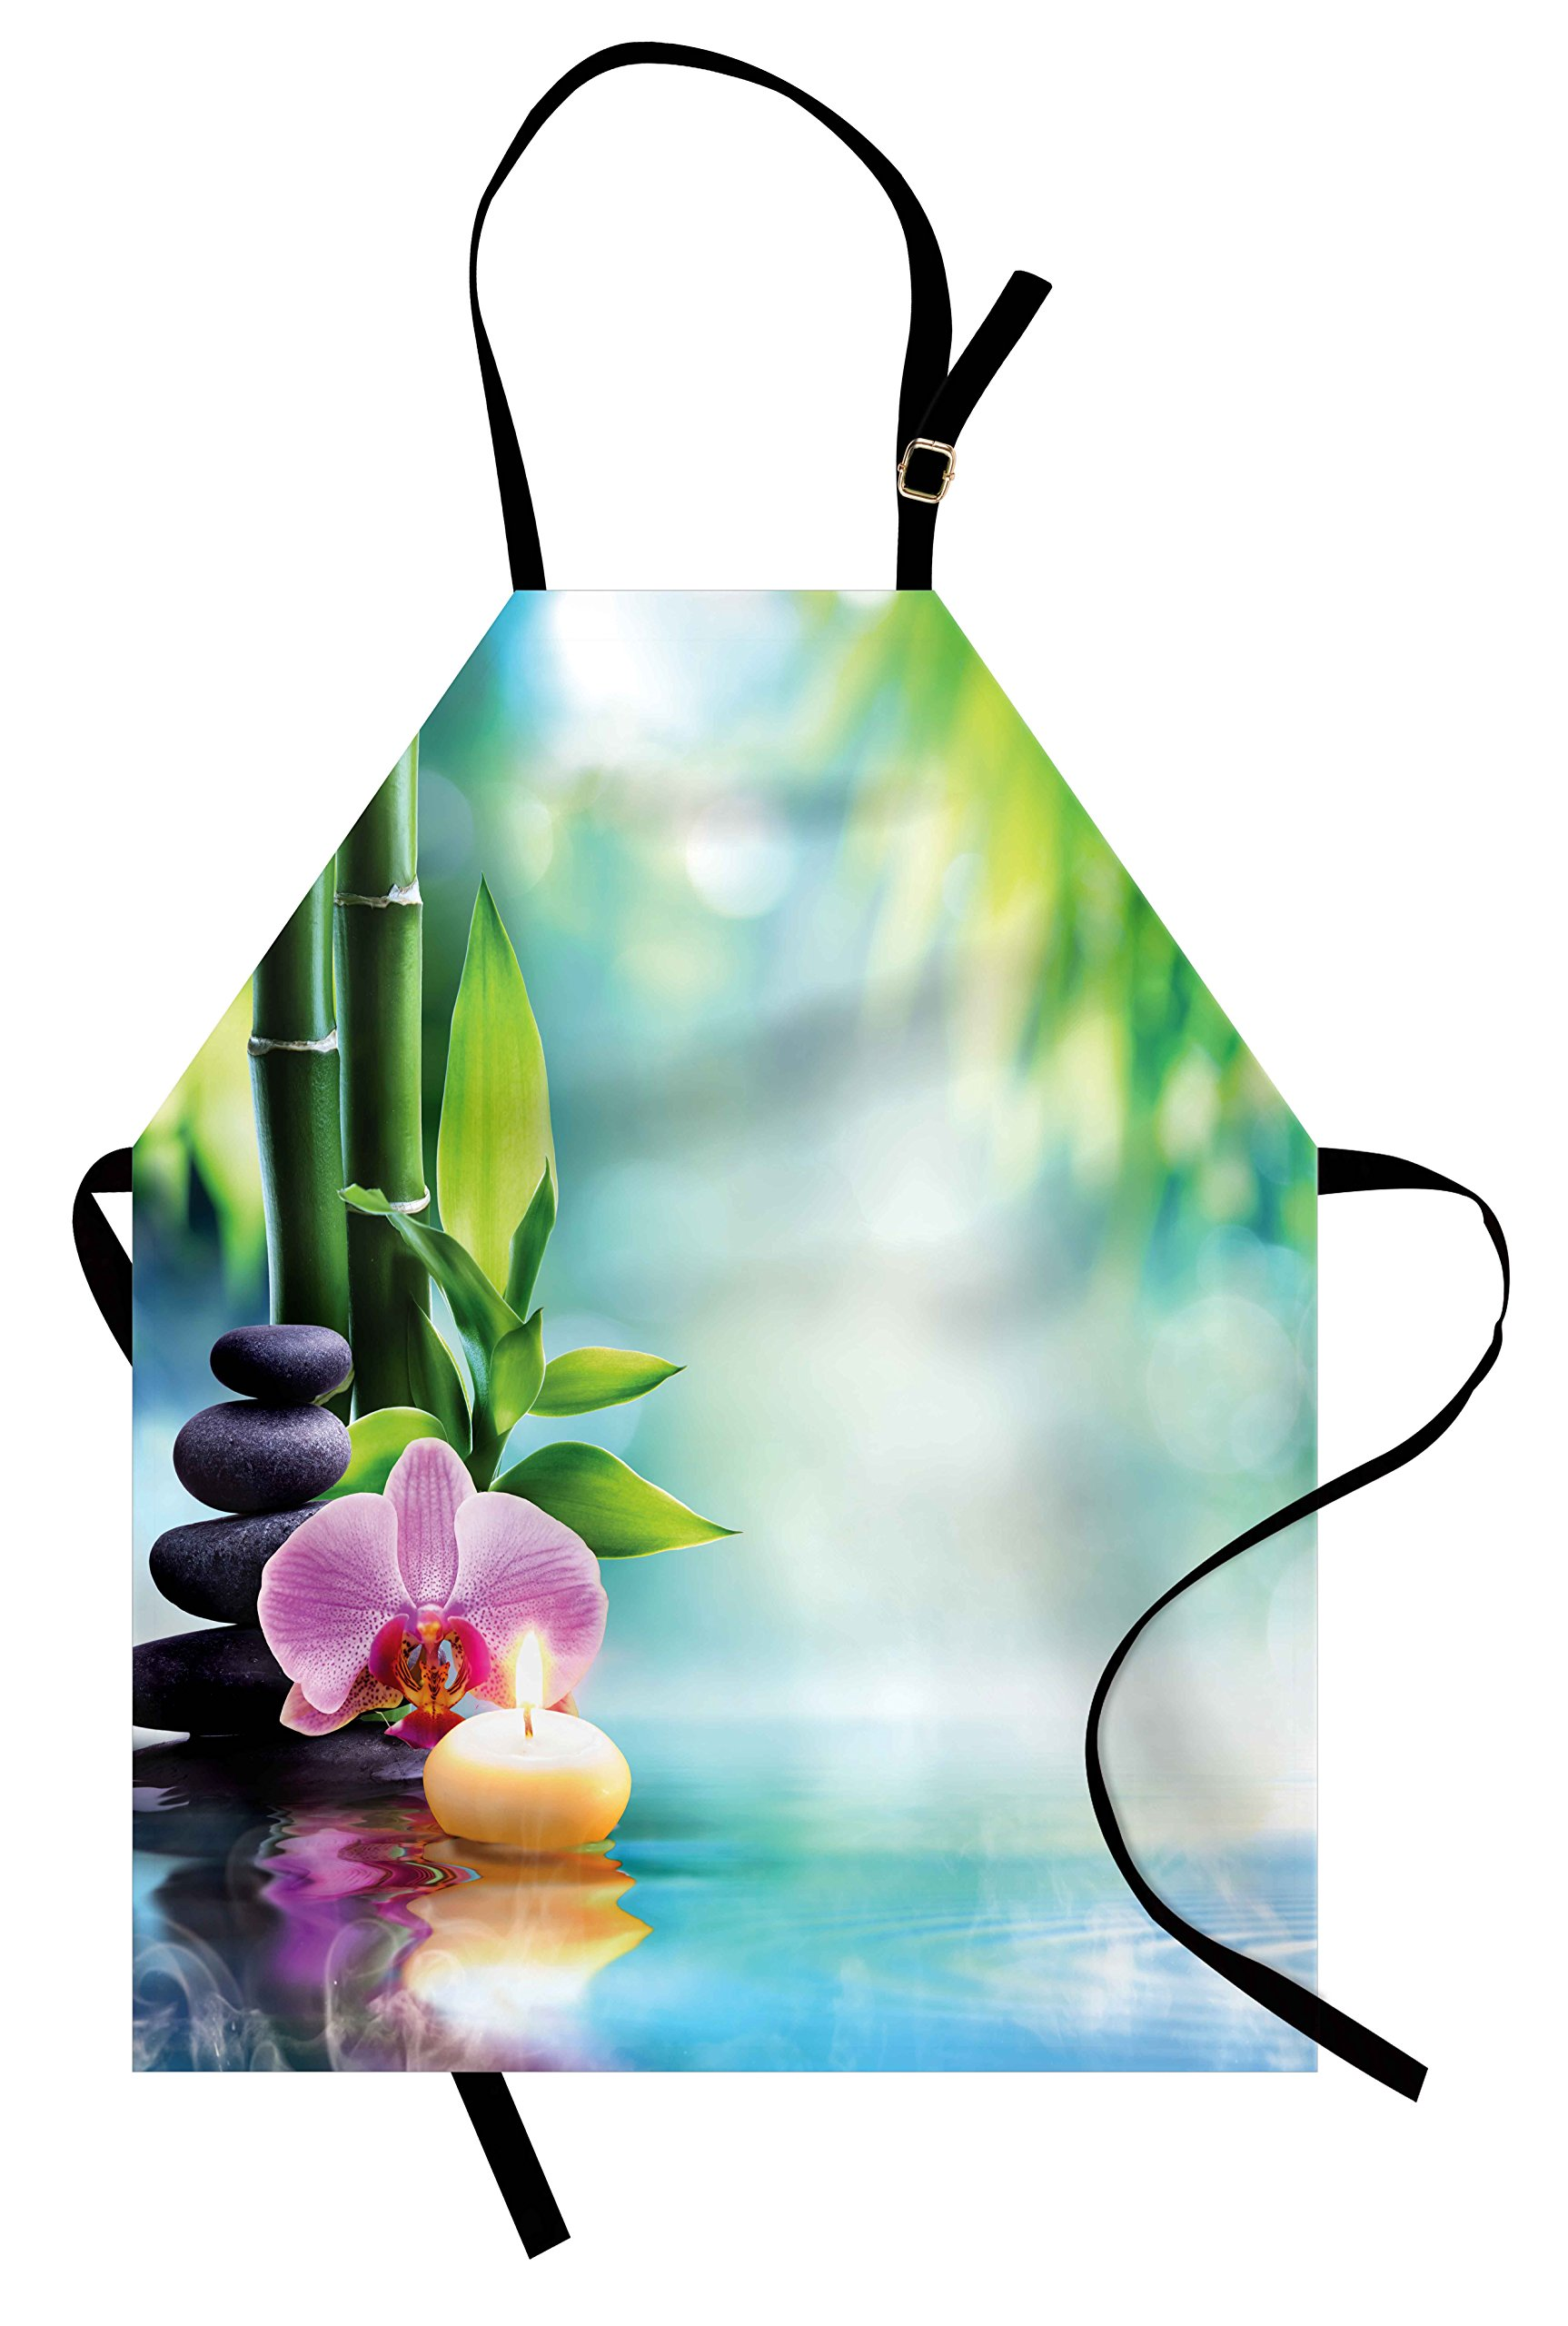 Ambesonne Spa Apron, Symbolic Spa Features with Candle and Bamboos Tranquil and Thoughtful Life Nature Print, Unisex Kitchen Bib Apron with Adjustable Neck for Cooking Baking Gardening, Multicolor